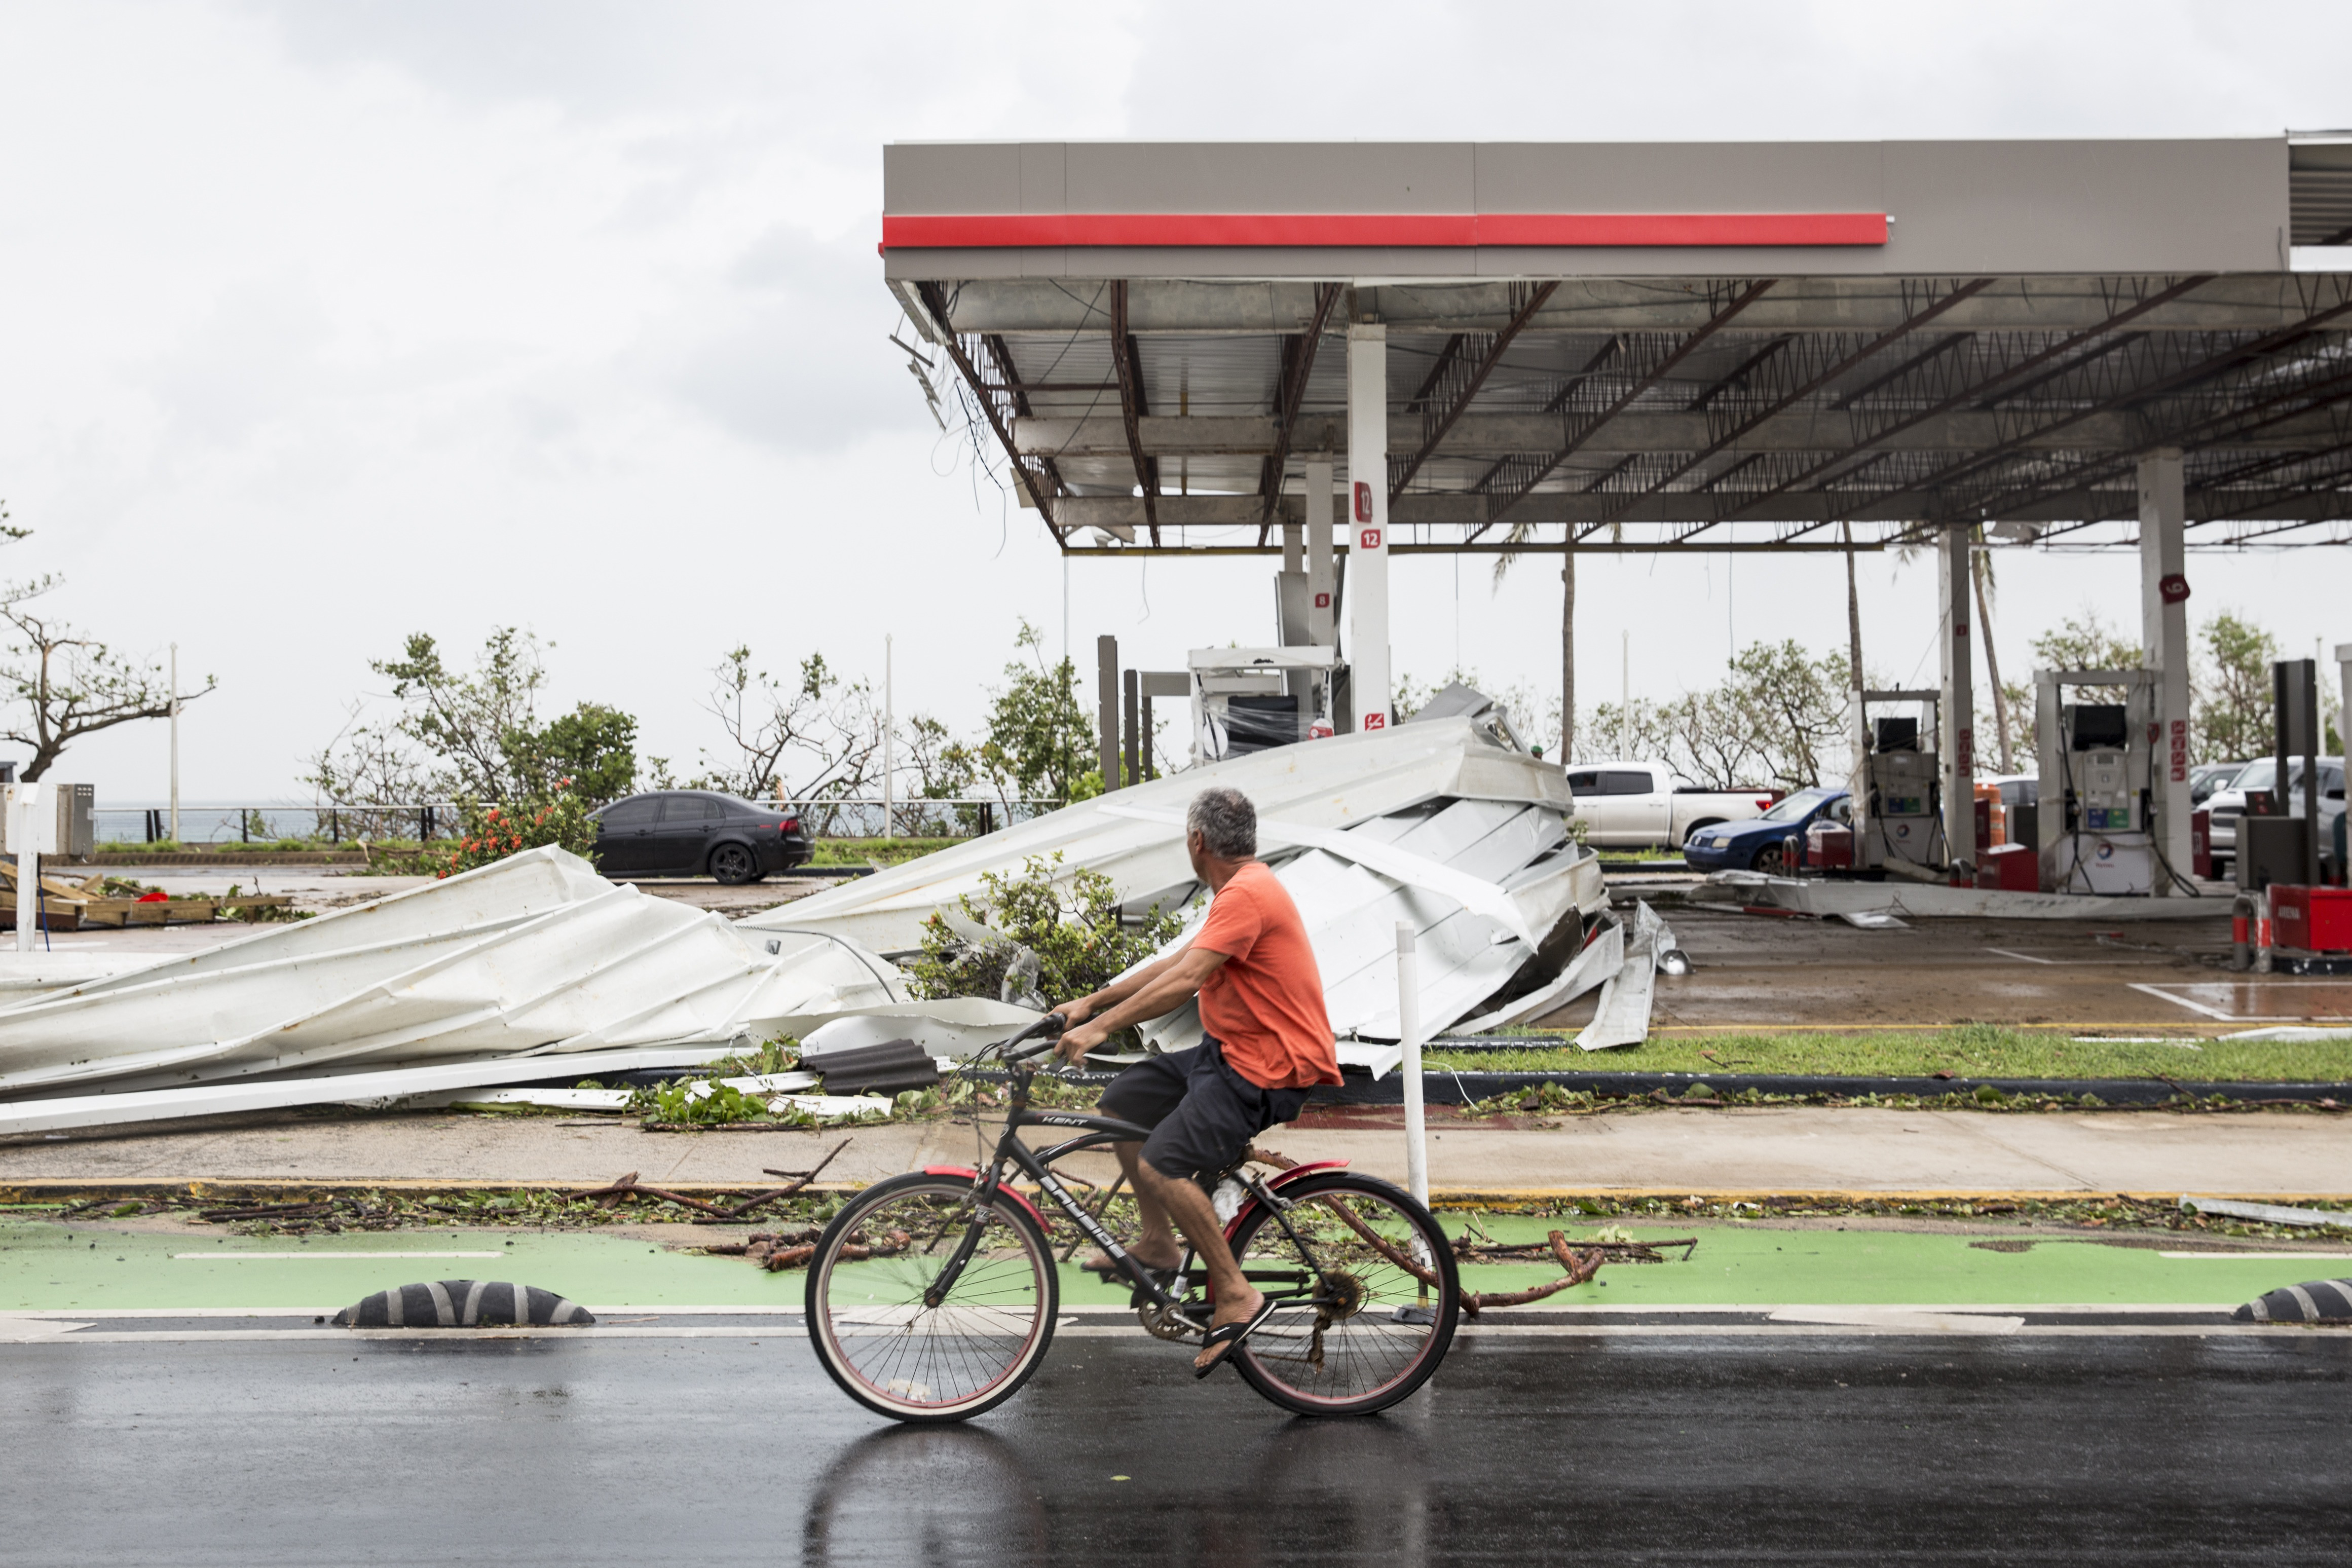 SAN JUAN, PUERTO RICO - SEPTEMBER 21: A damaged gas station the day after Hurricane Maria made landfall on September 21, 2017 in San Juan, Puerto Rico. The majority of the island has lost power, in San Juan many are left without running water or cell phone service, and the Governor said Maria is the